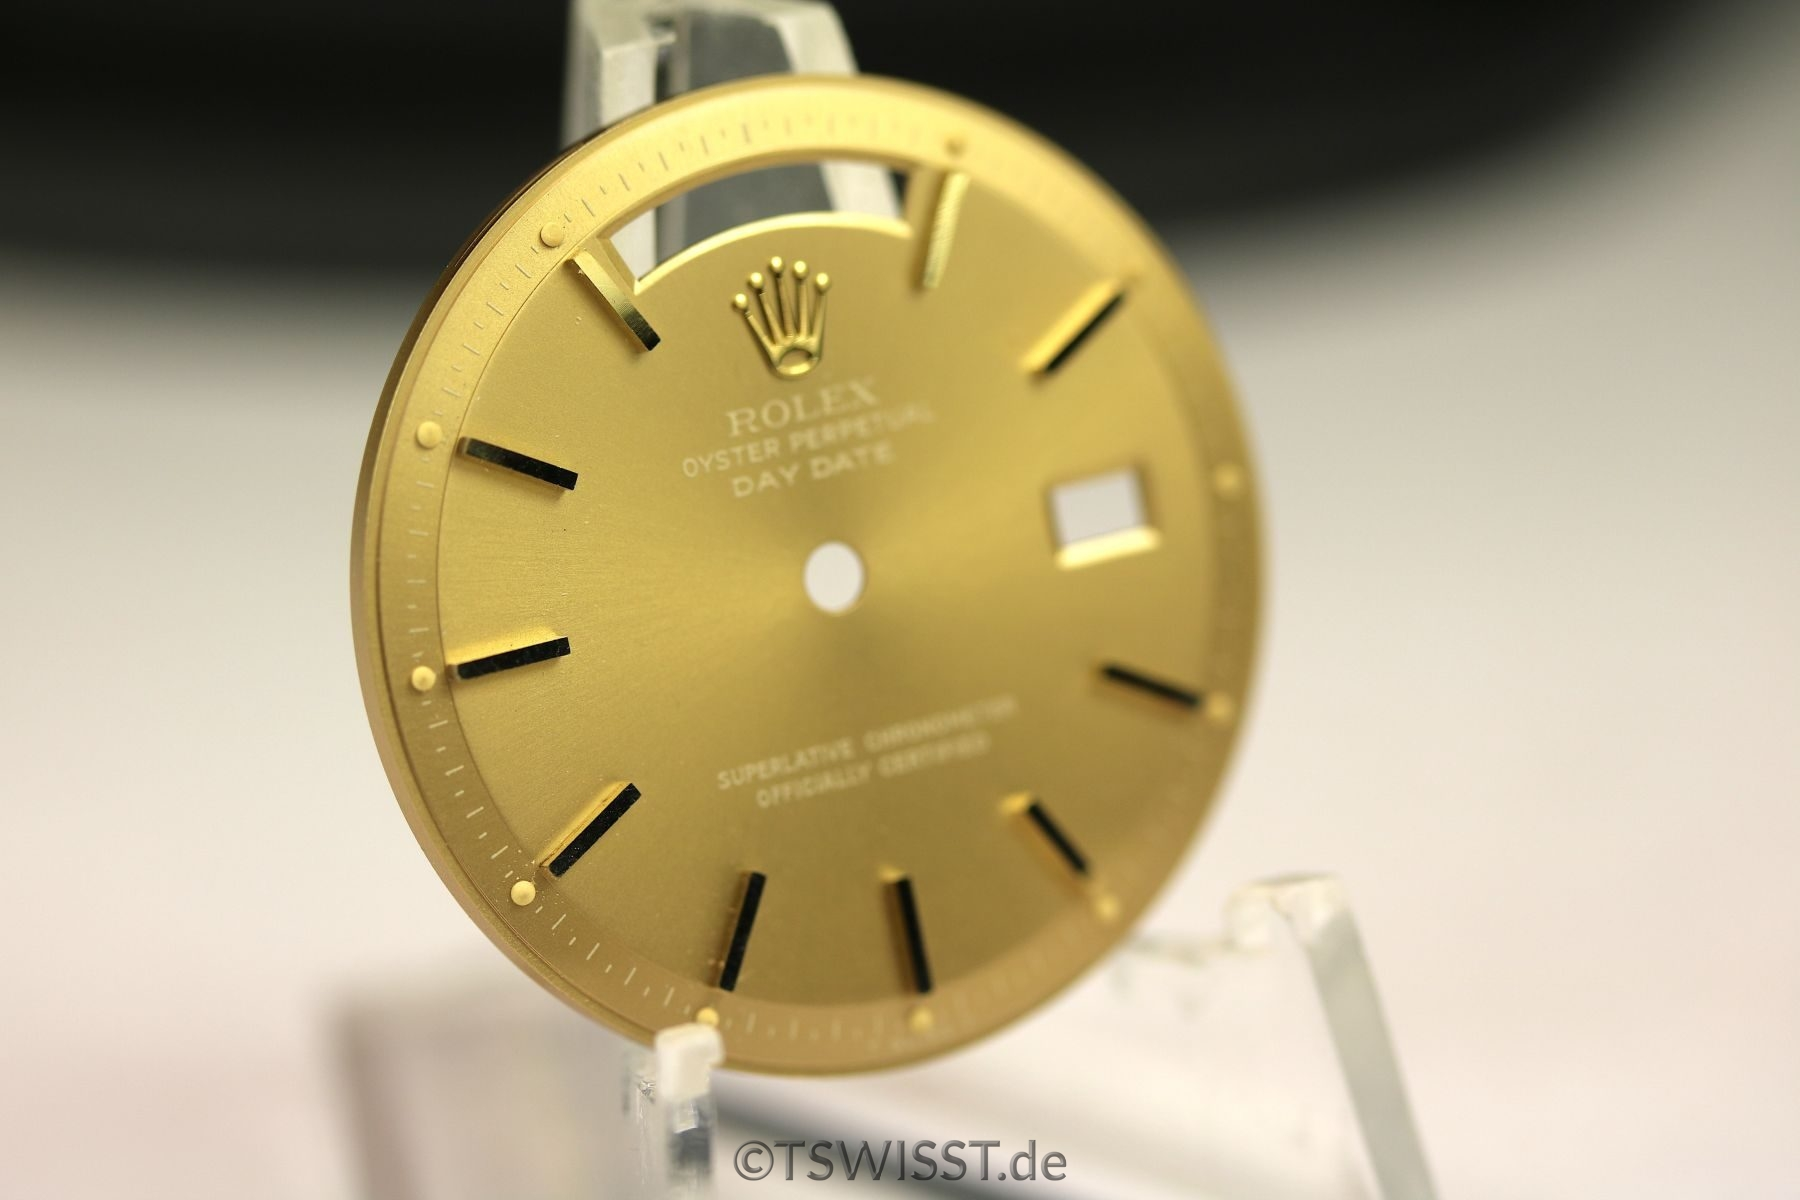 Rolex Day-Date dial